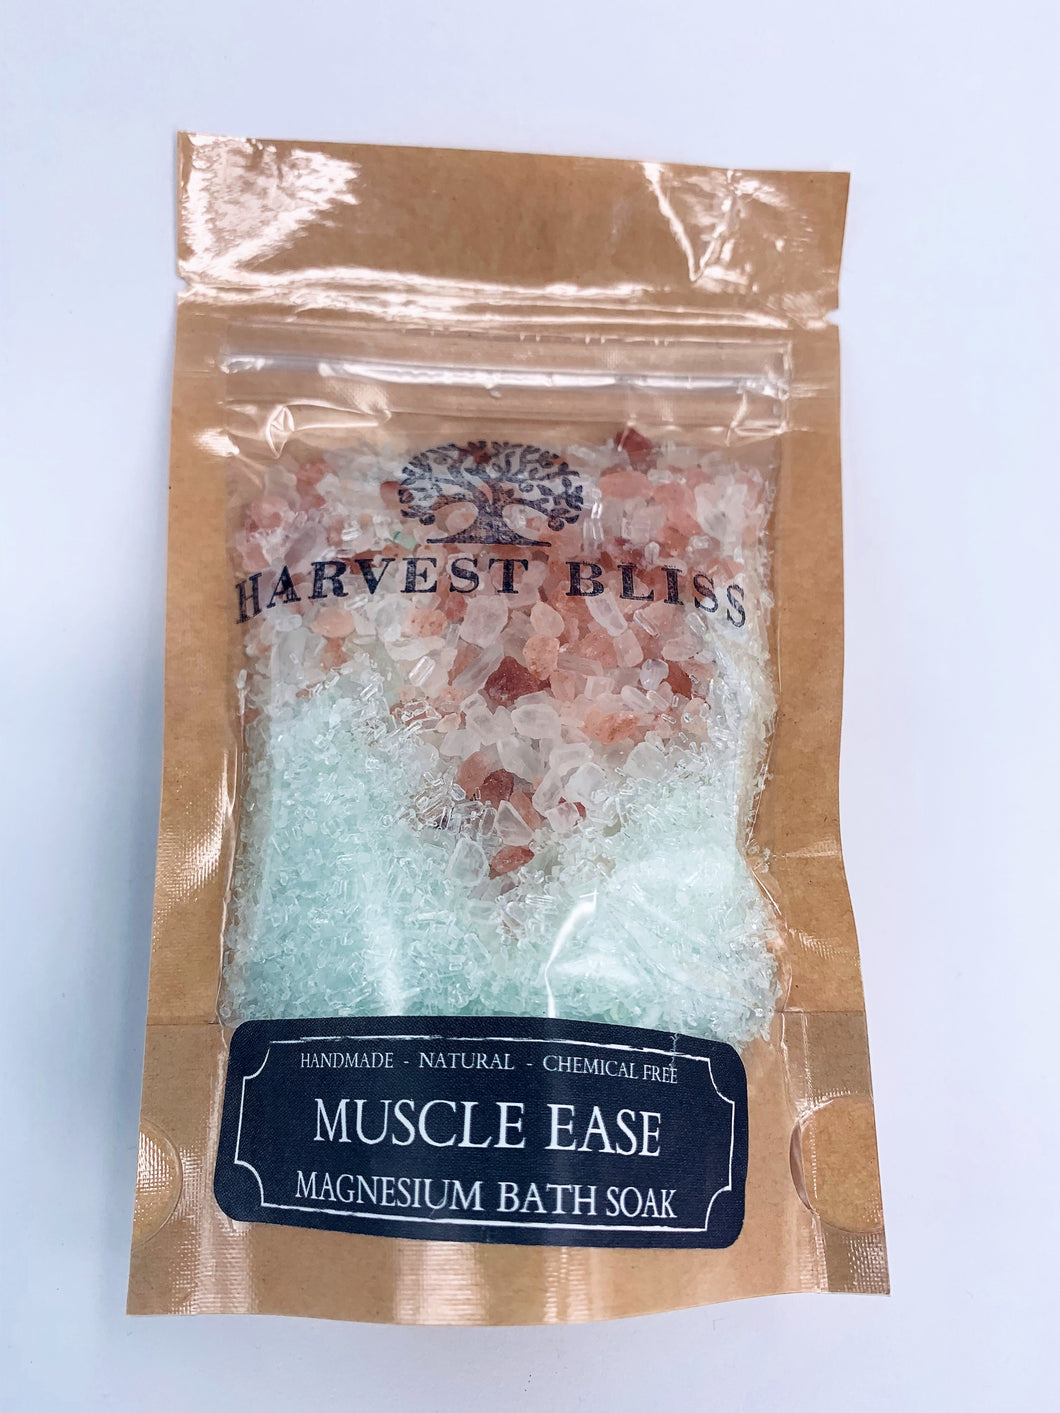 Harvest Bliss Muscle Ease Bath Soak